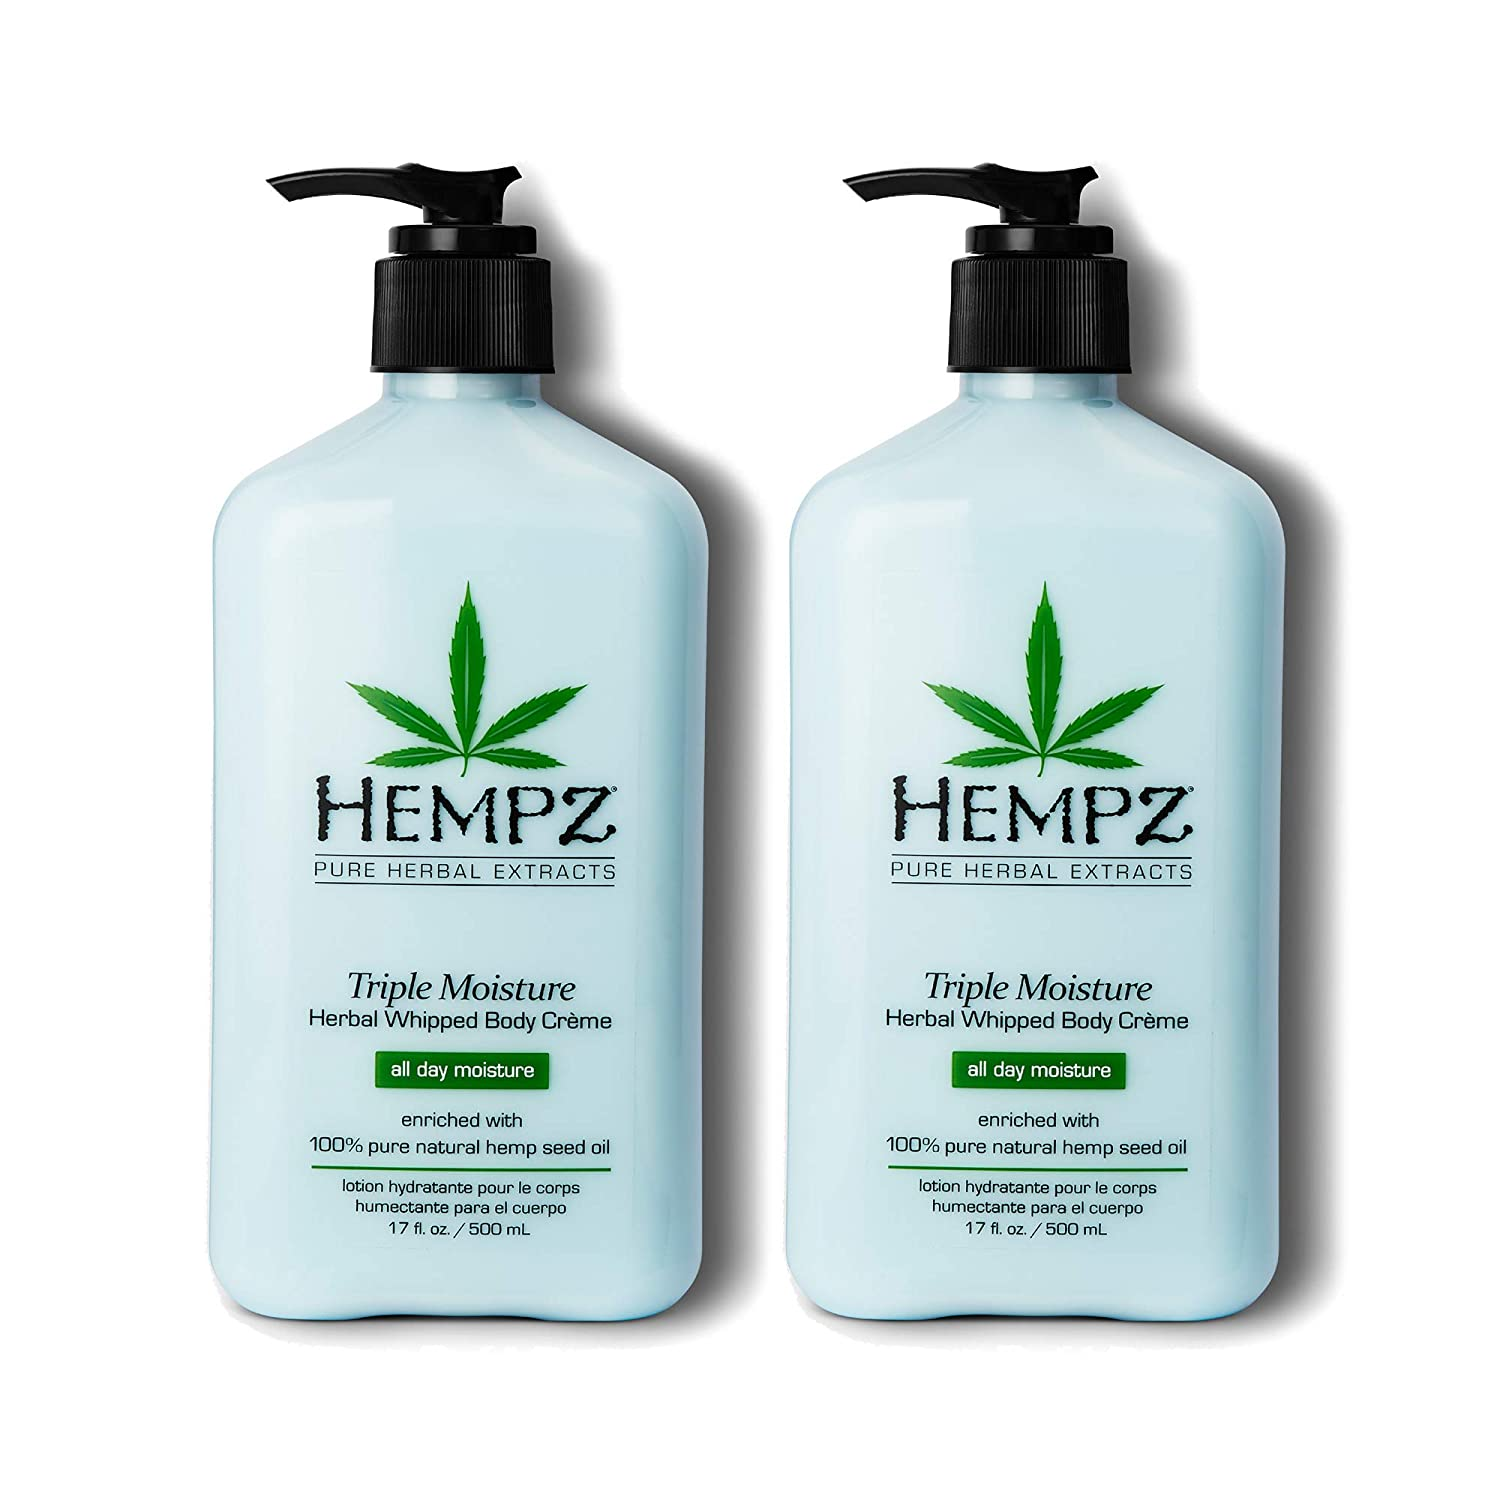 Hempz Natural Triple Moisture Herbal Whipped Body Cream with 100% Pure Hemp Seed Oil for 24-Hour Hydration - Moisturizing Vegan Skin Lotion with Yangu Oil, Peach and Grapefruit, 17oz, 2 Pack Bundle